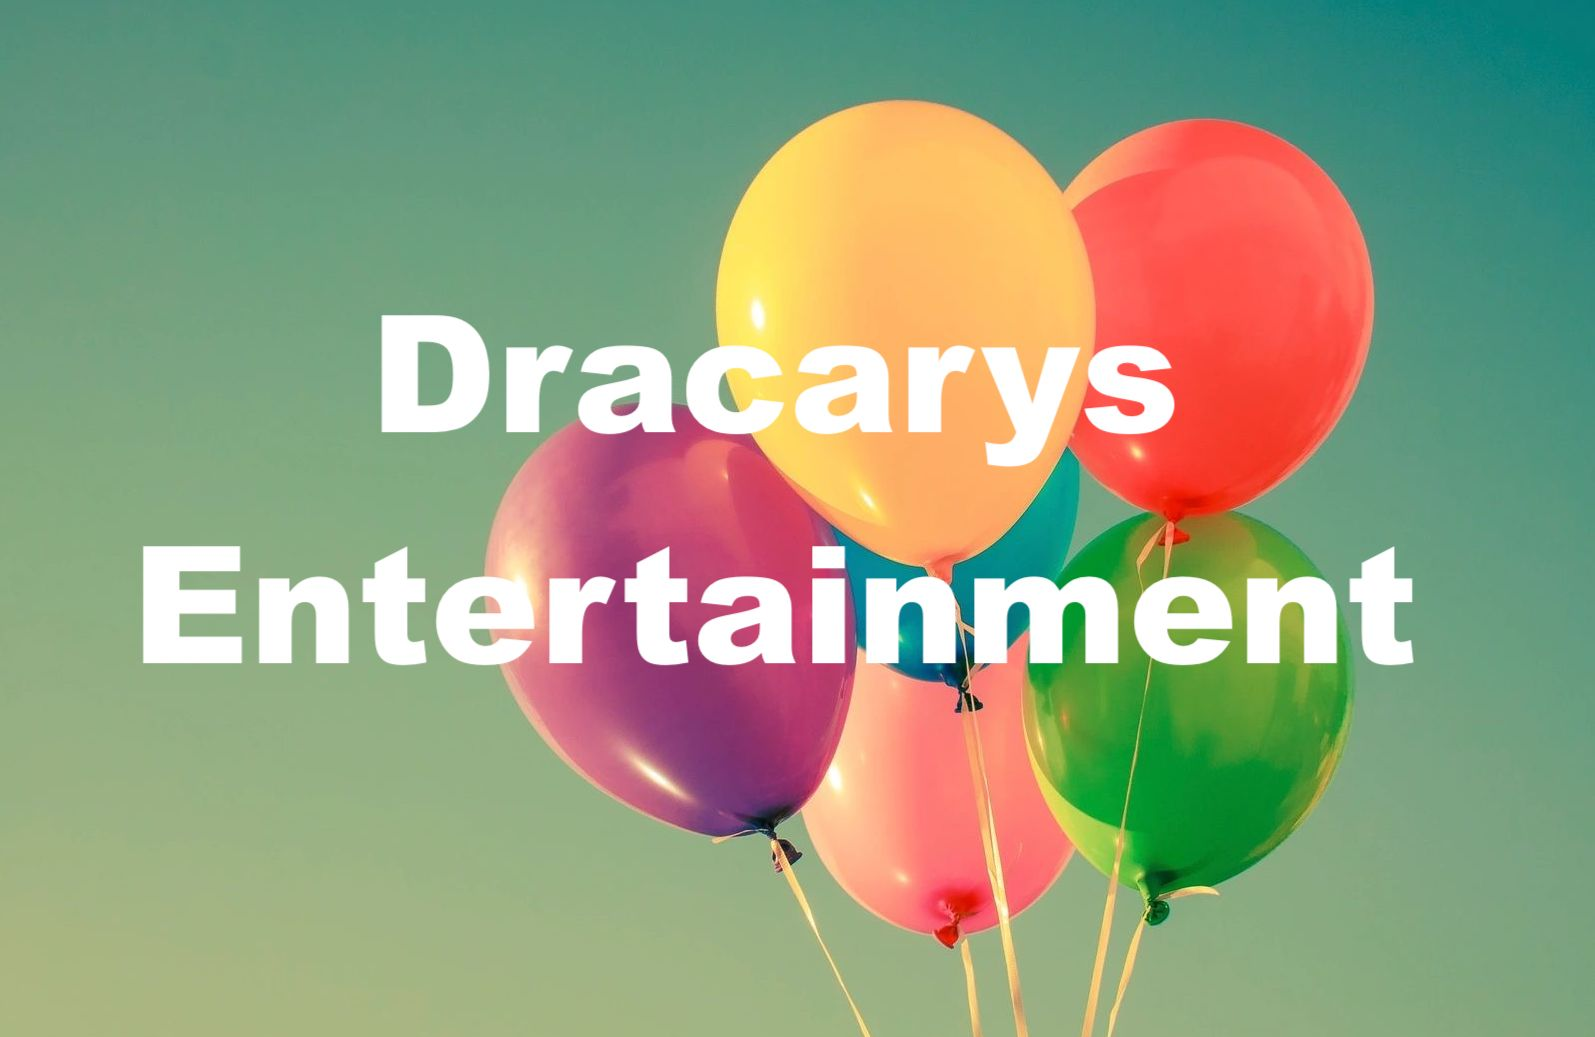 Dracarys Entertainment